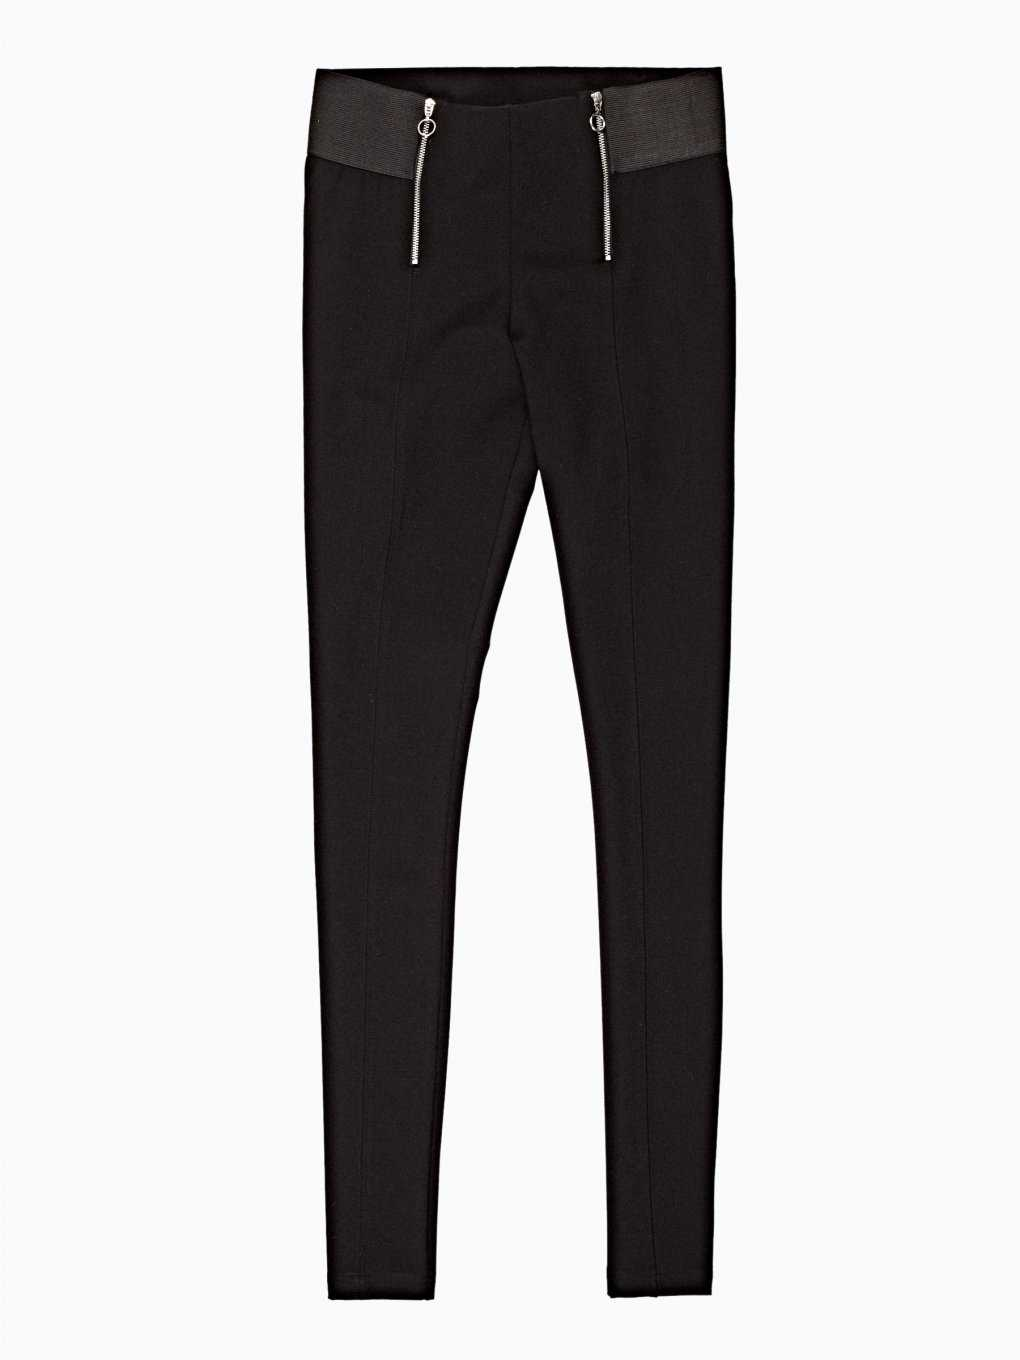 Super stretch trousers with zippers